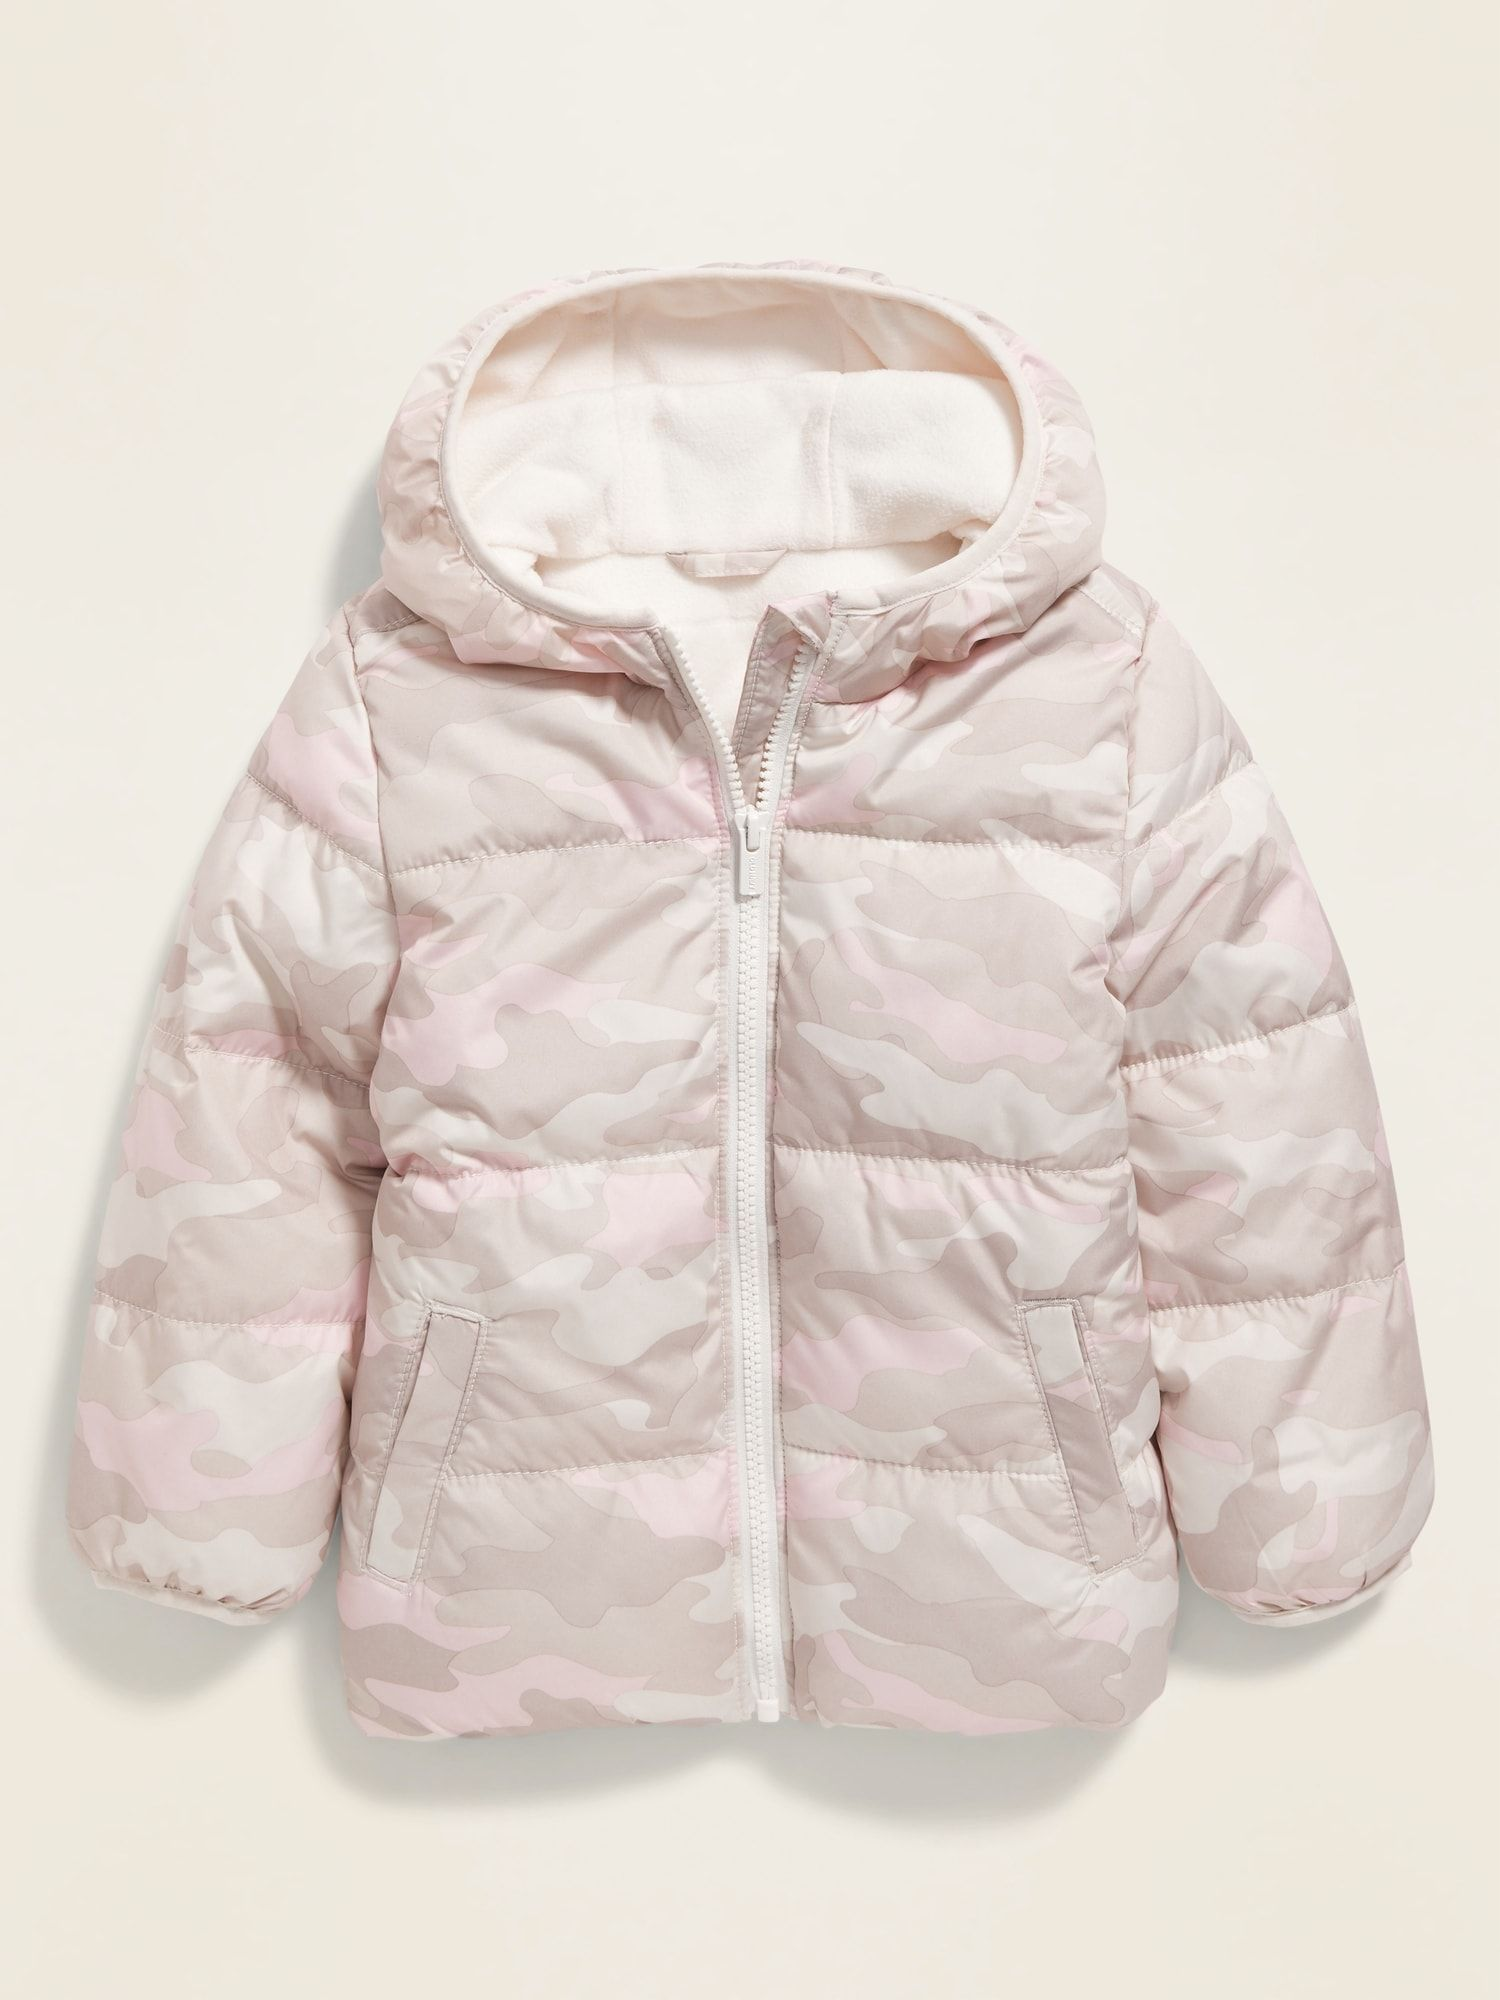 Old Navy Unisex Camo Print Frost Free Puffer Jacket For Toddler Pink Camo Size 3t Camo Print Puffer Jackets Jackets [ 2000 x 1500 Pixel ]